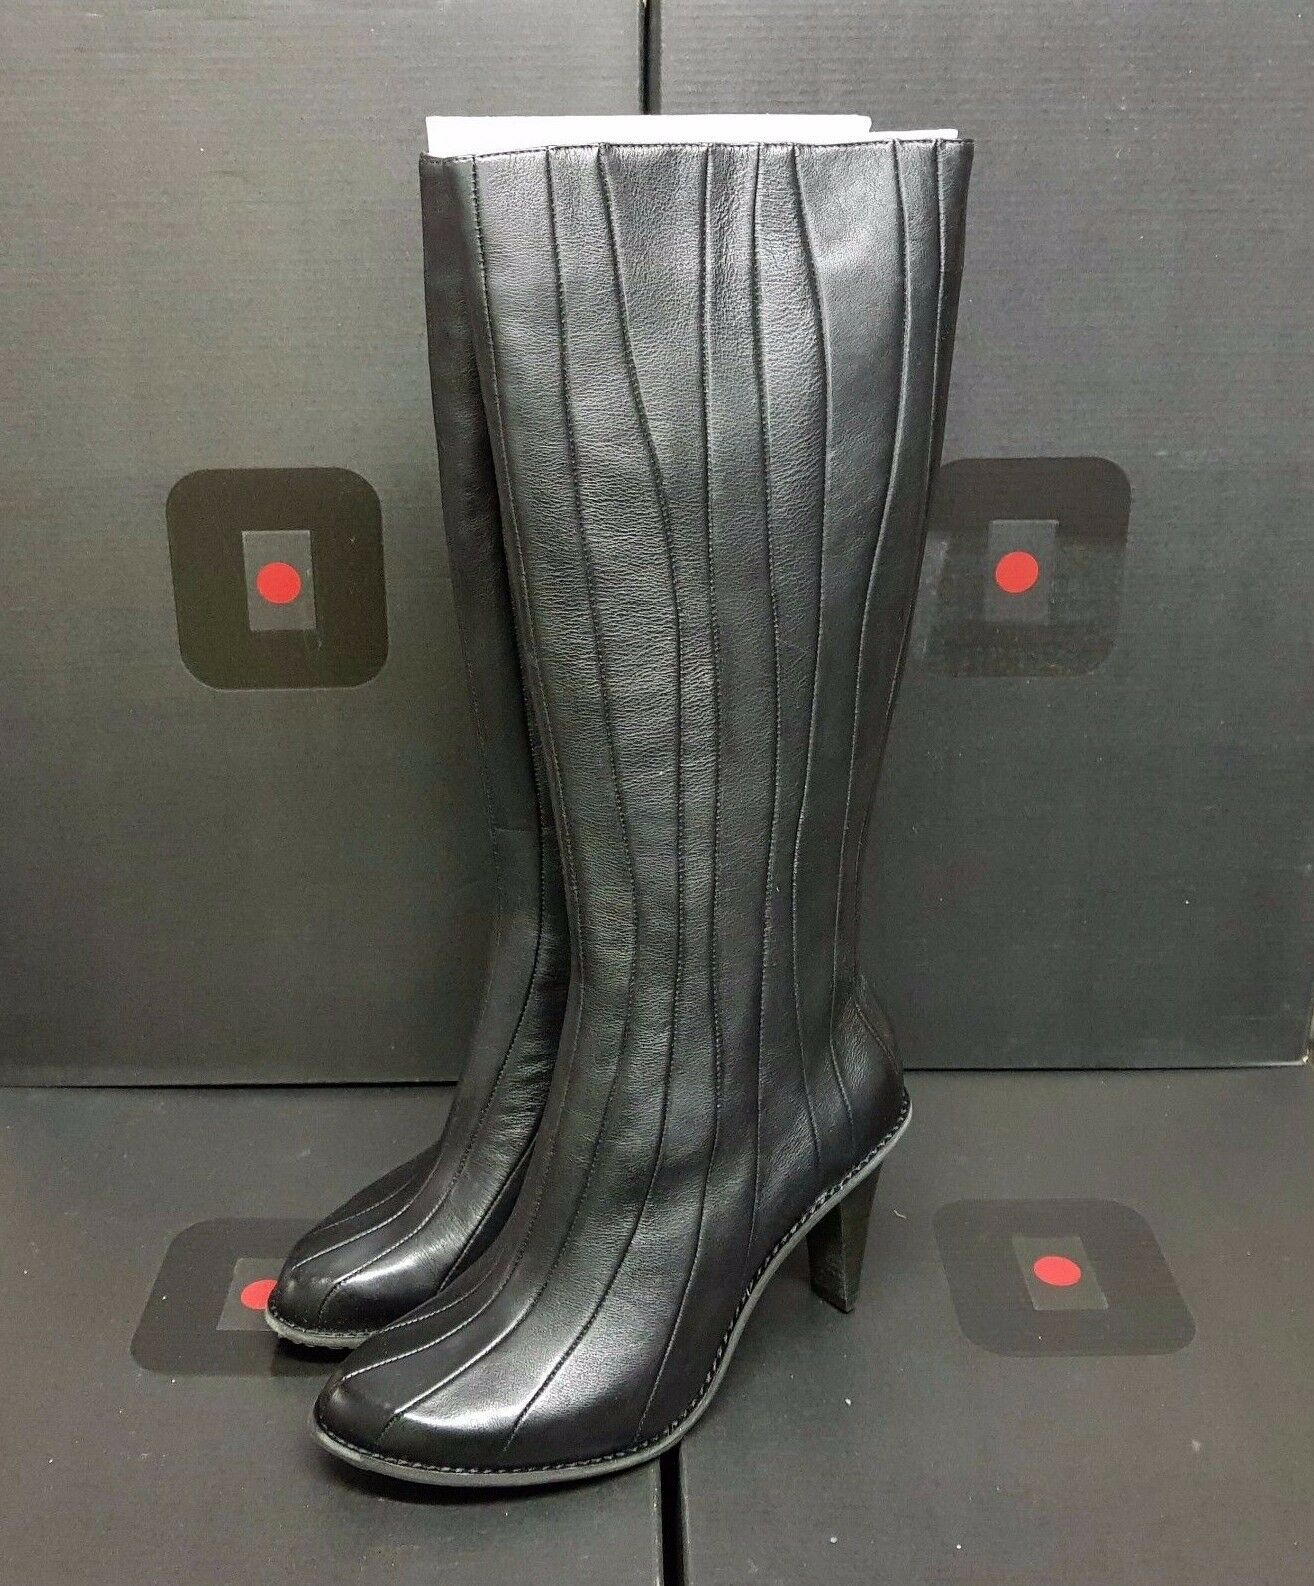 TSUBO  Kampot  damen Stiefel schuhe leather schwarz UK 3.5 US 5 EUR 36 (rrp  )